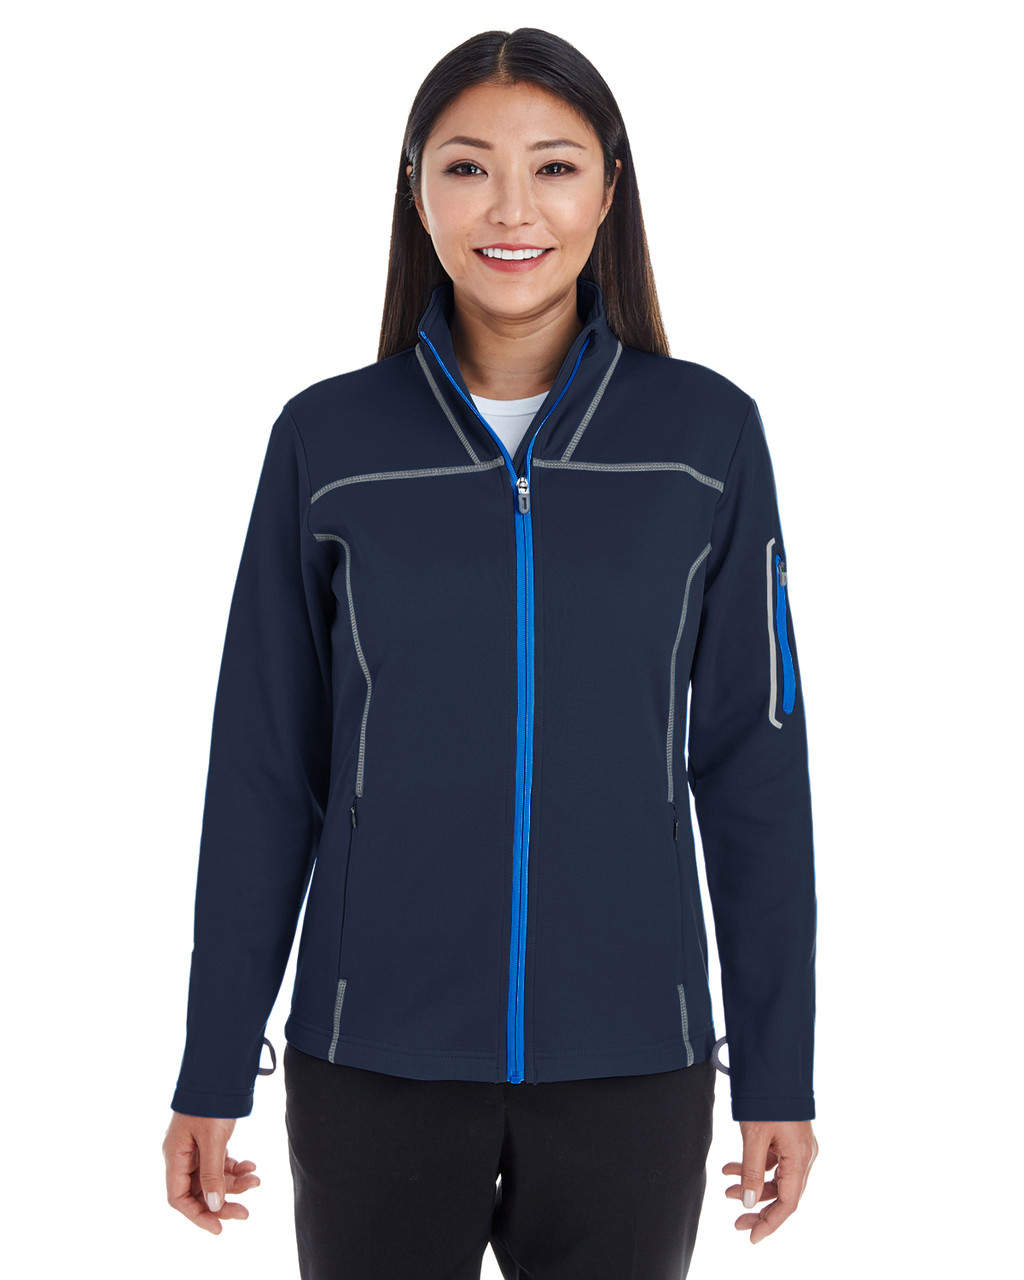 Navy/Grey/Navy Blue - FRONT -NE703W Ash City - North End Ladies' Endeavor Interactive Performance Fleece Jacket | Blankclothing.ca